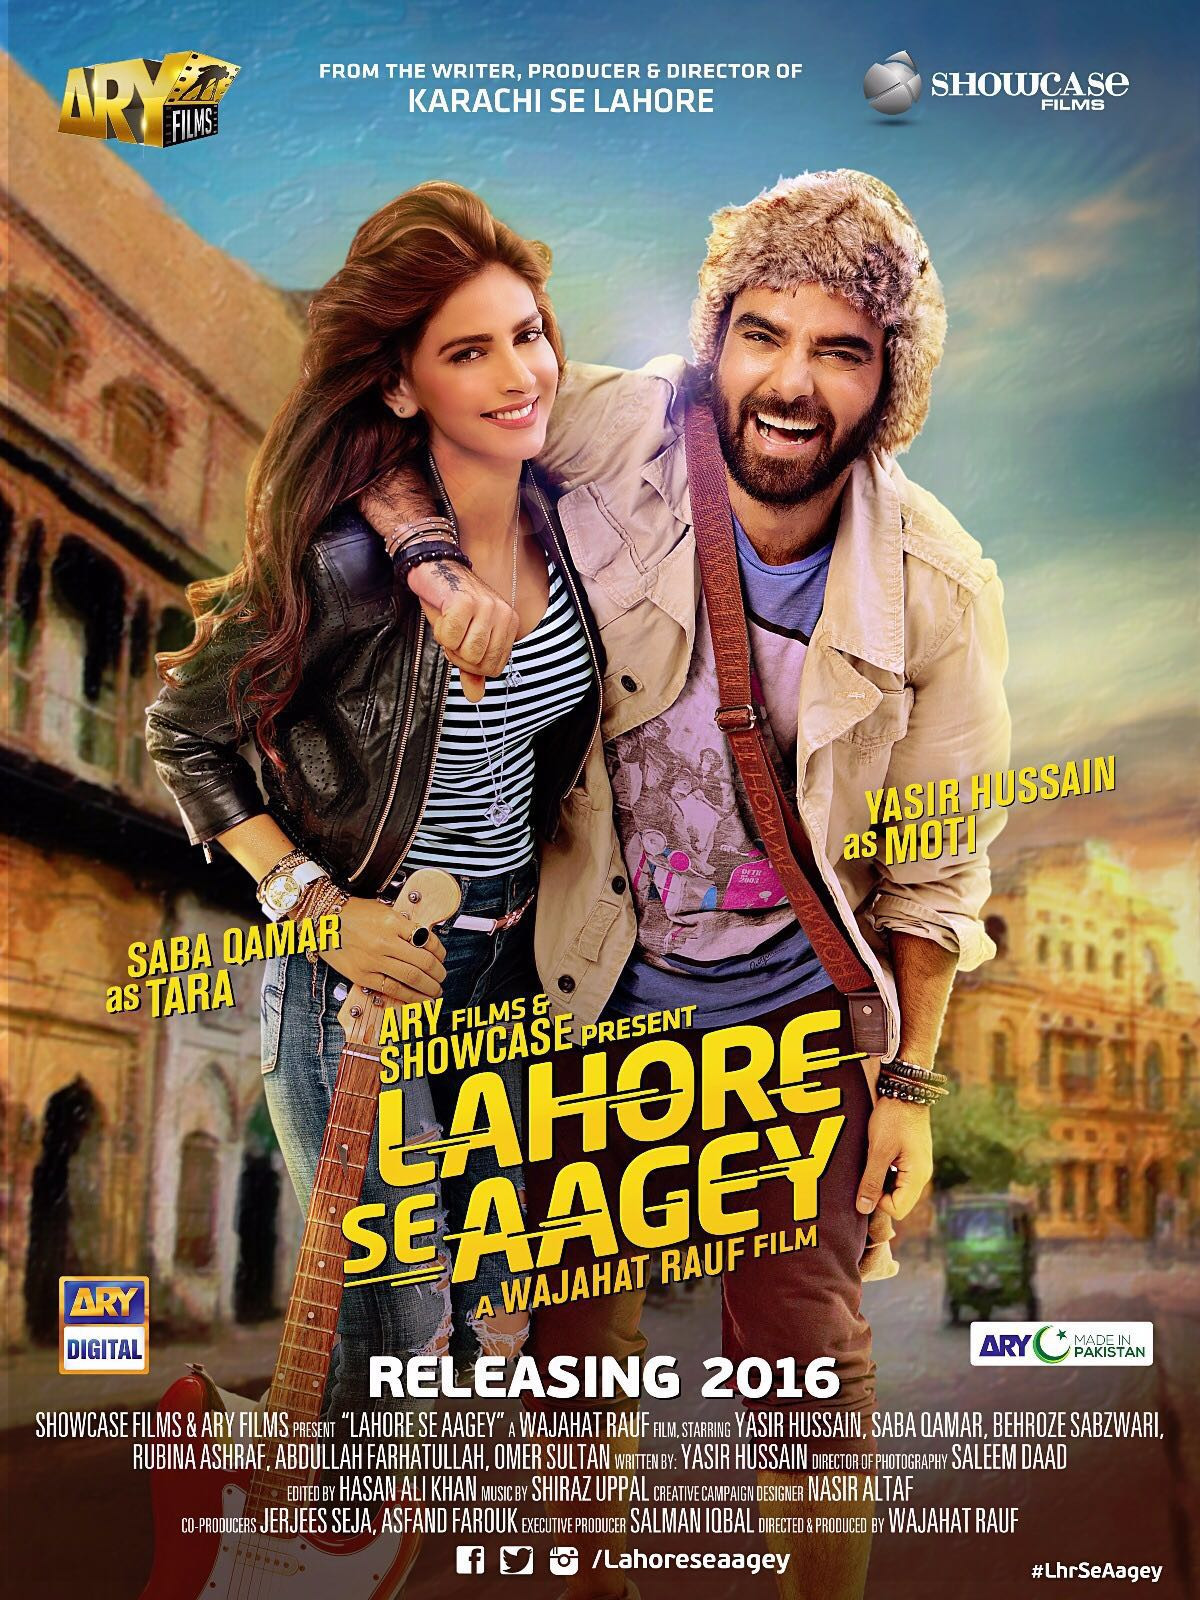 First look of #LahoreSeAagey